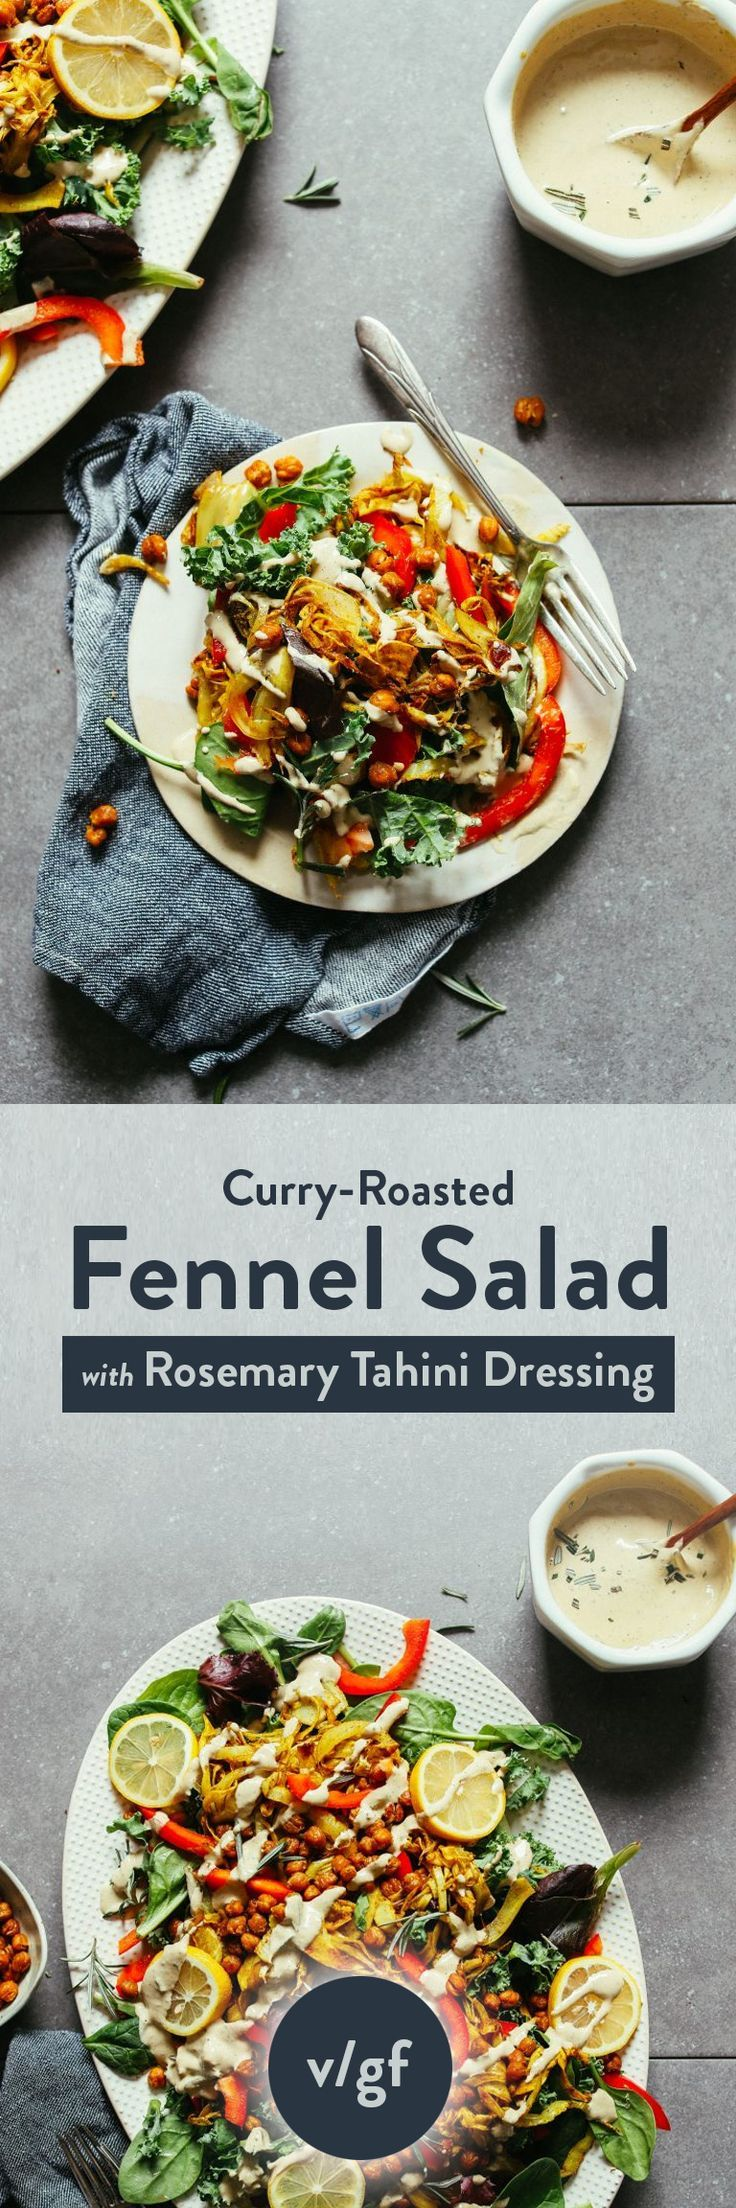 Curry Roasted Fennel Salad With Rosemary Tahini Dressing